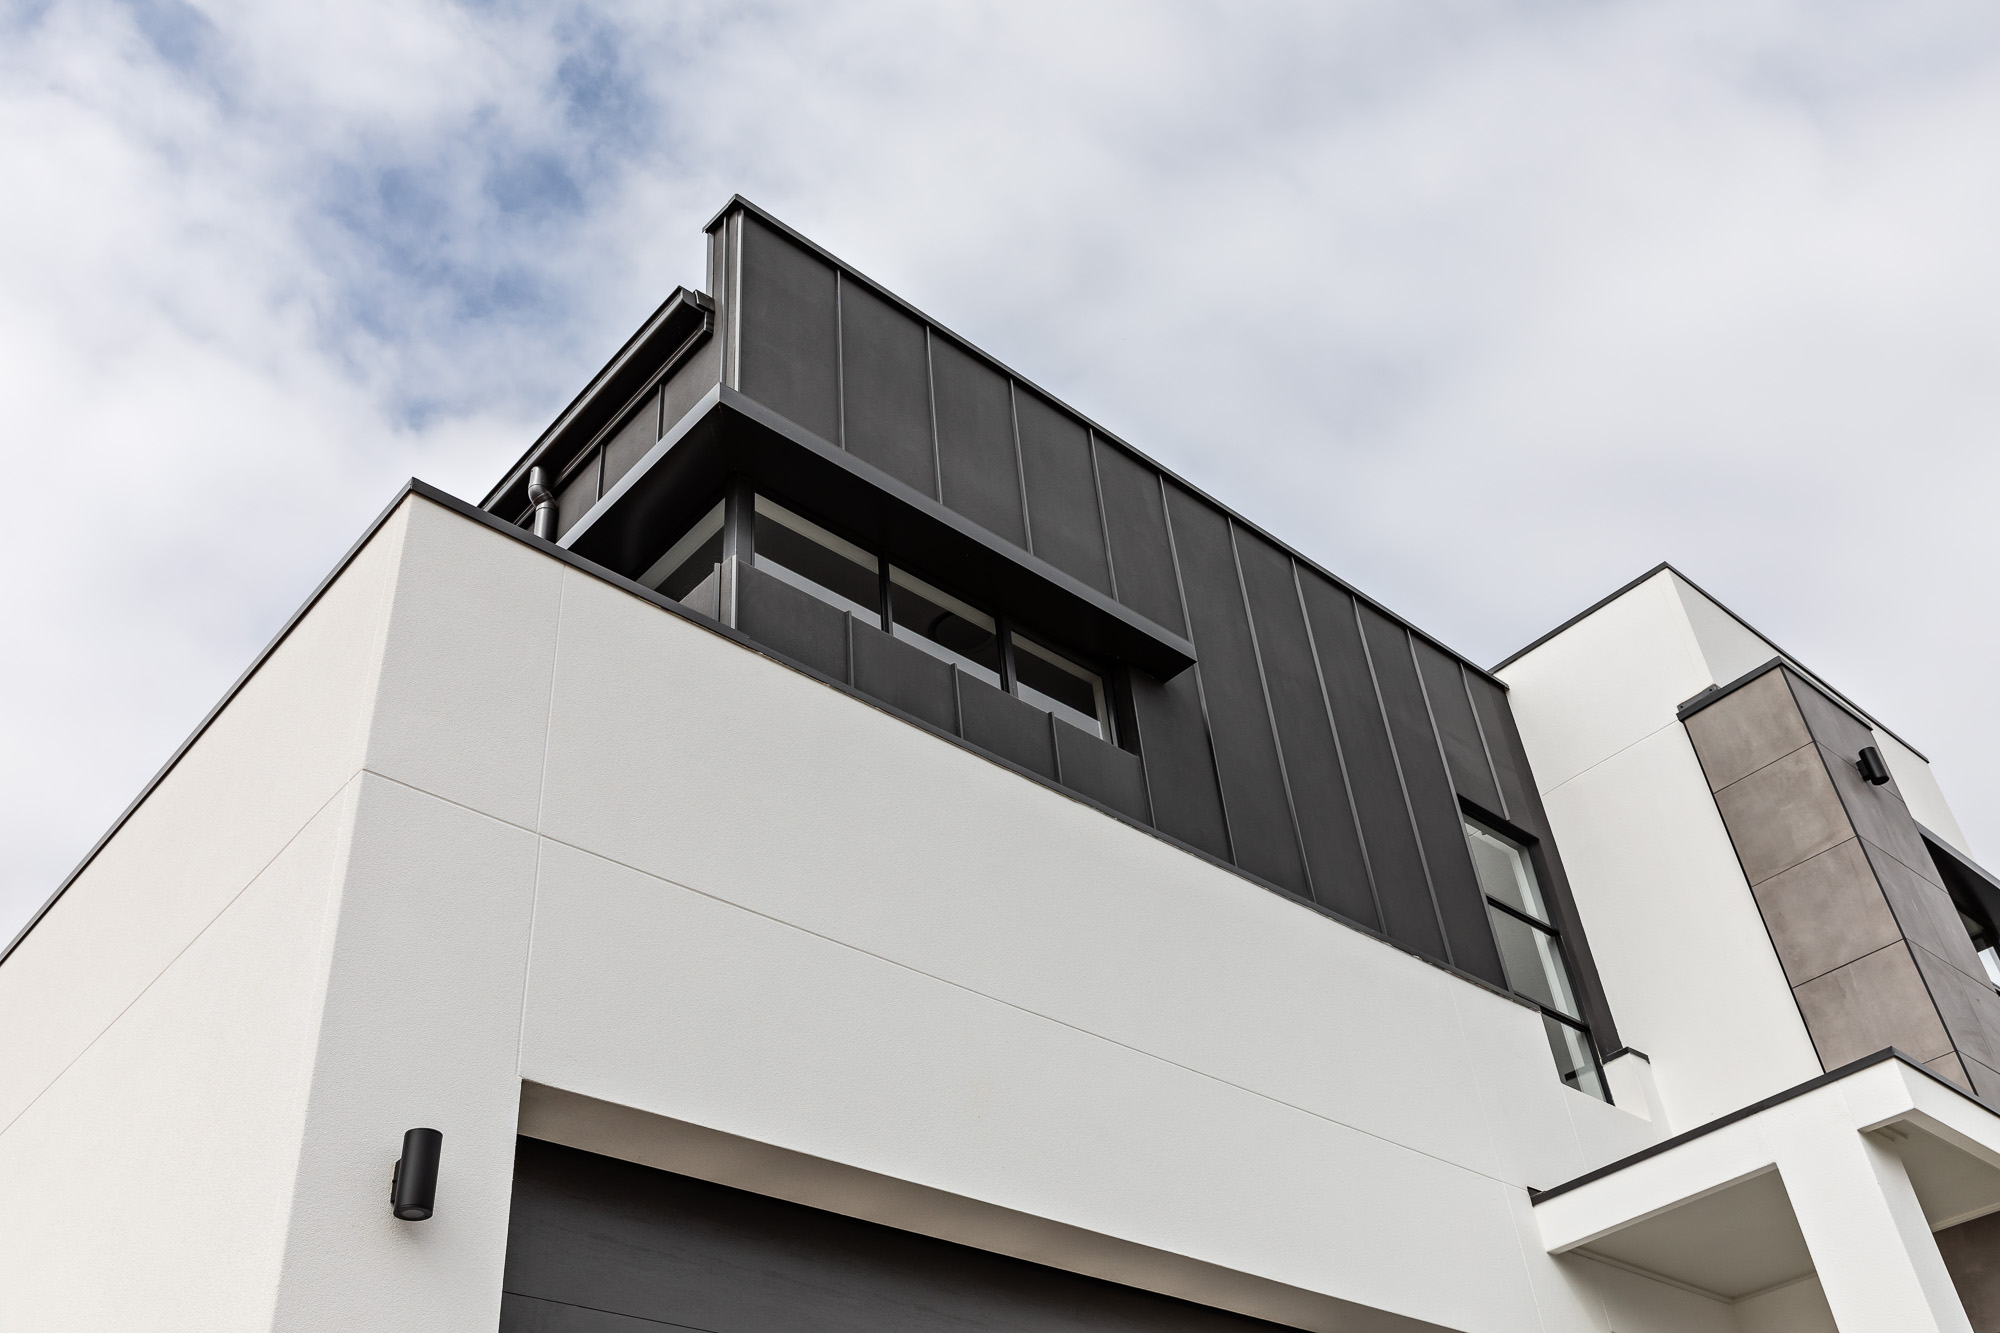 5 reasons why we love using CSR Hebel to build our new homes